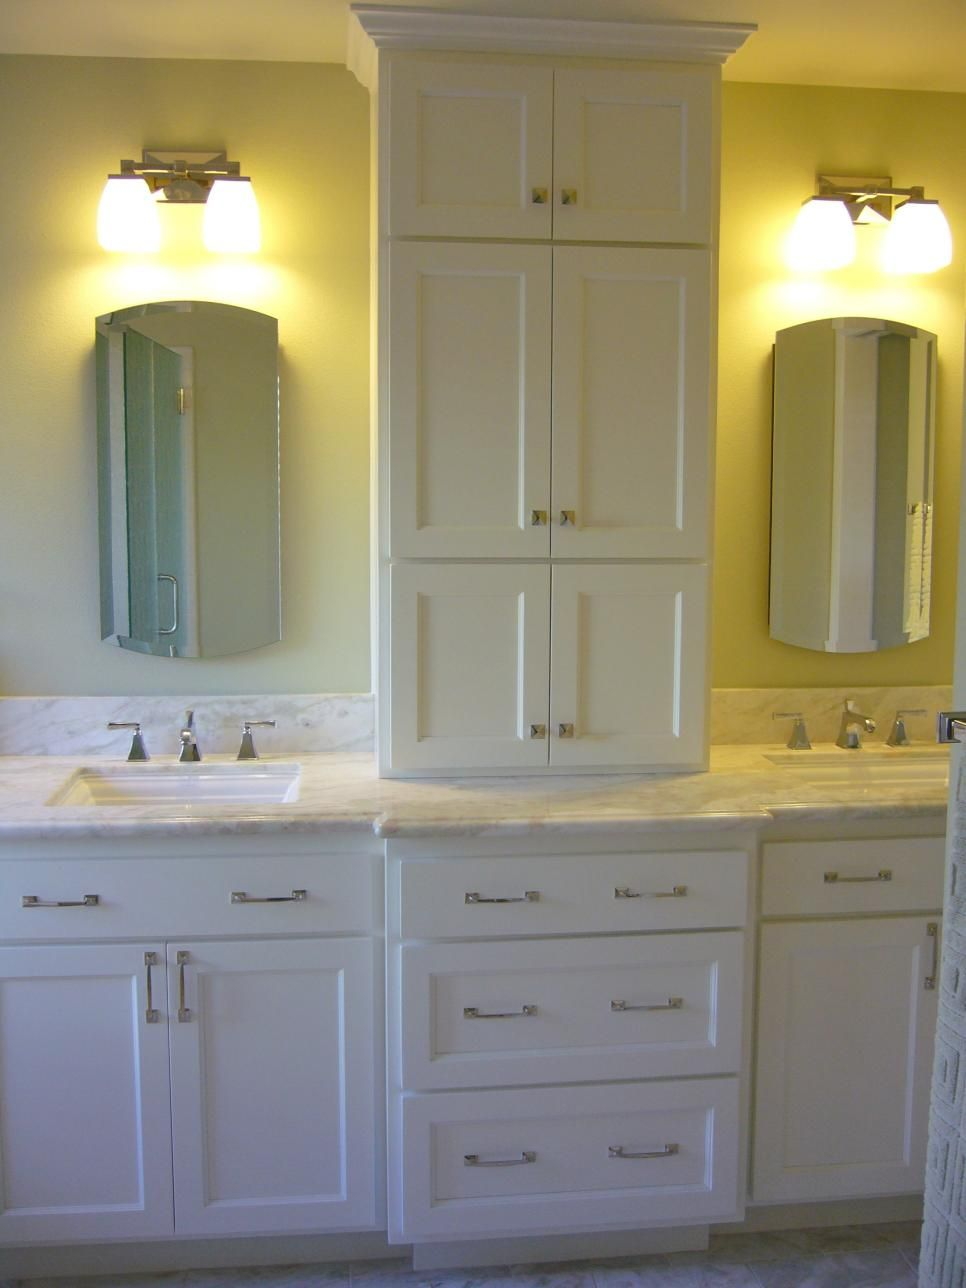 A Tall Custom Tower Between The Double Sinks Provides Easily